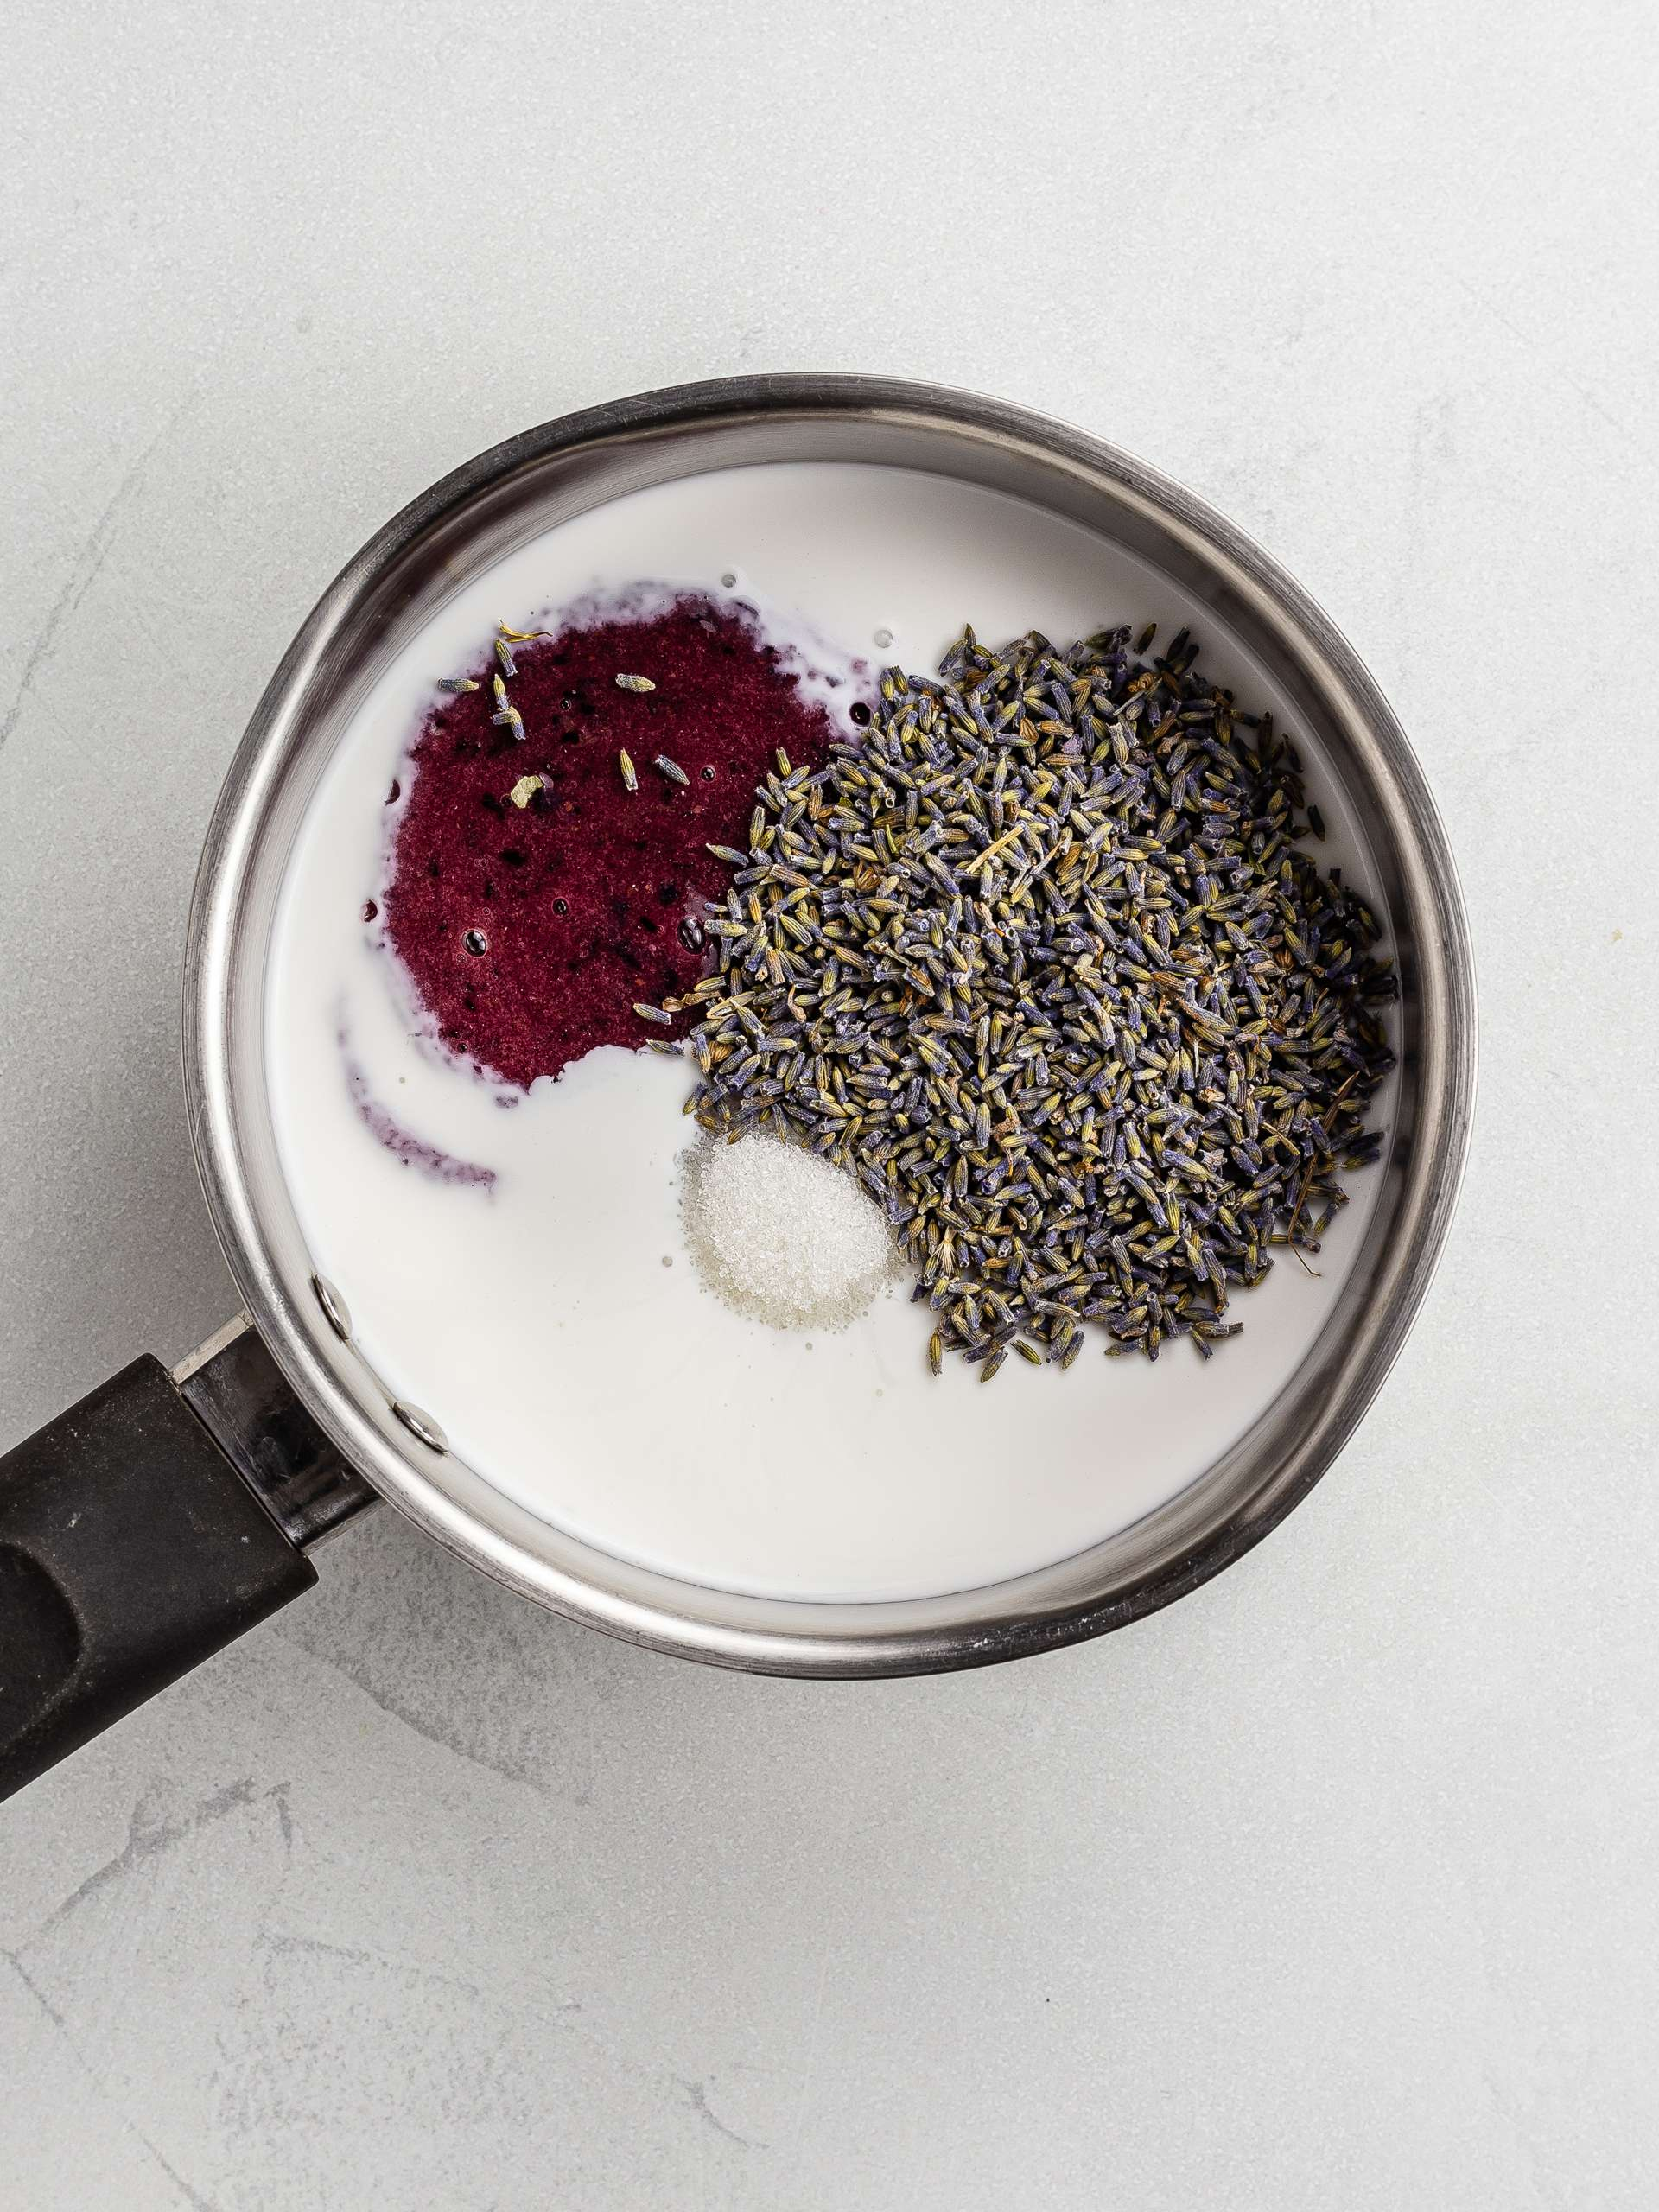 lavender, blueberry puree, and coconut milk in a pot